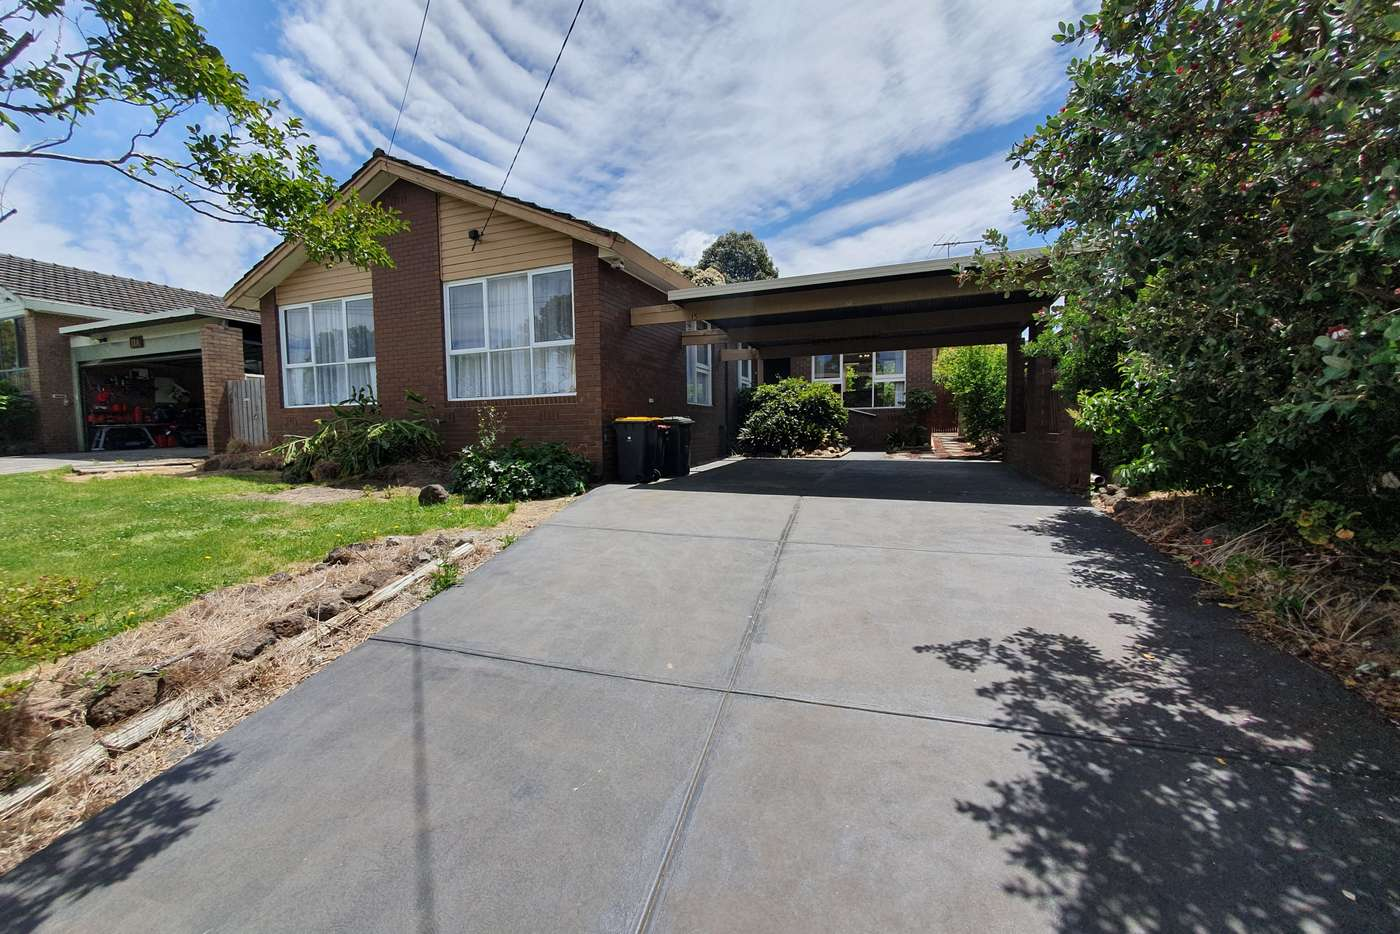 Main view of Homely house listing, 15 Chapel  Street, Glen Waverley VIC 3150